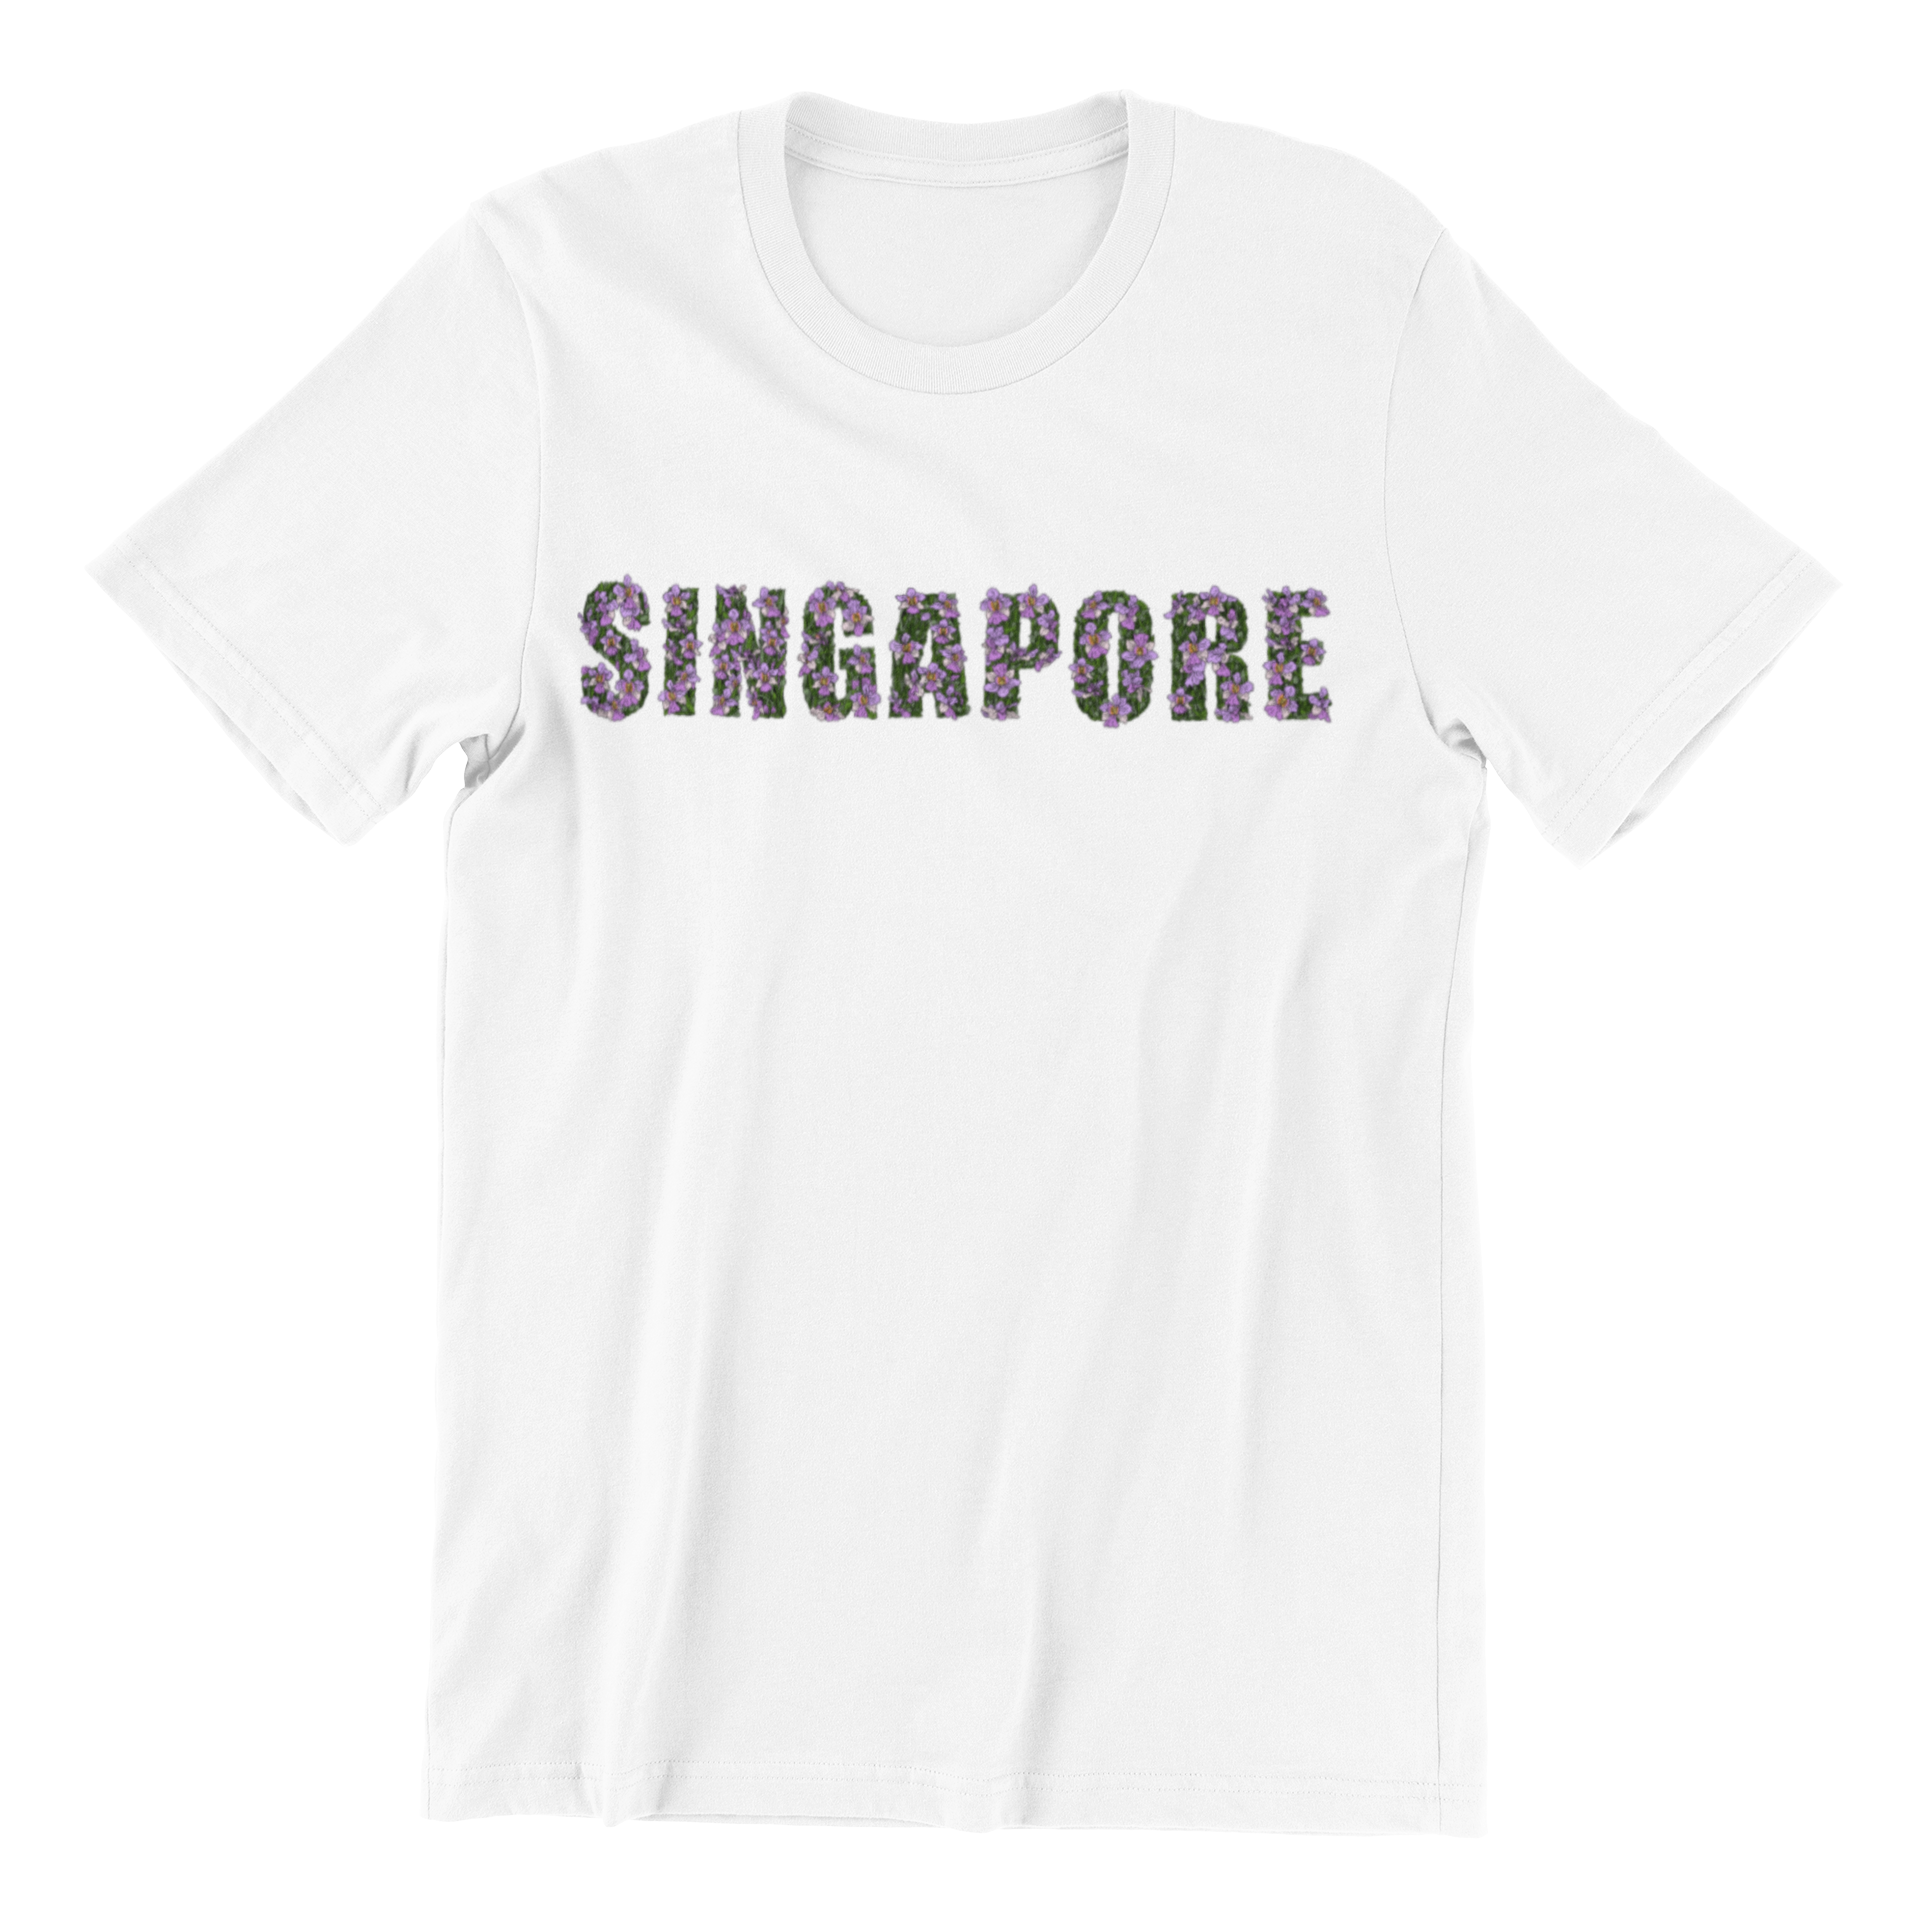 Singapore Orchids Short Sleeve T-shirt